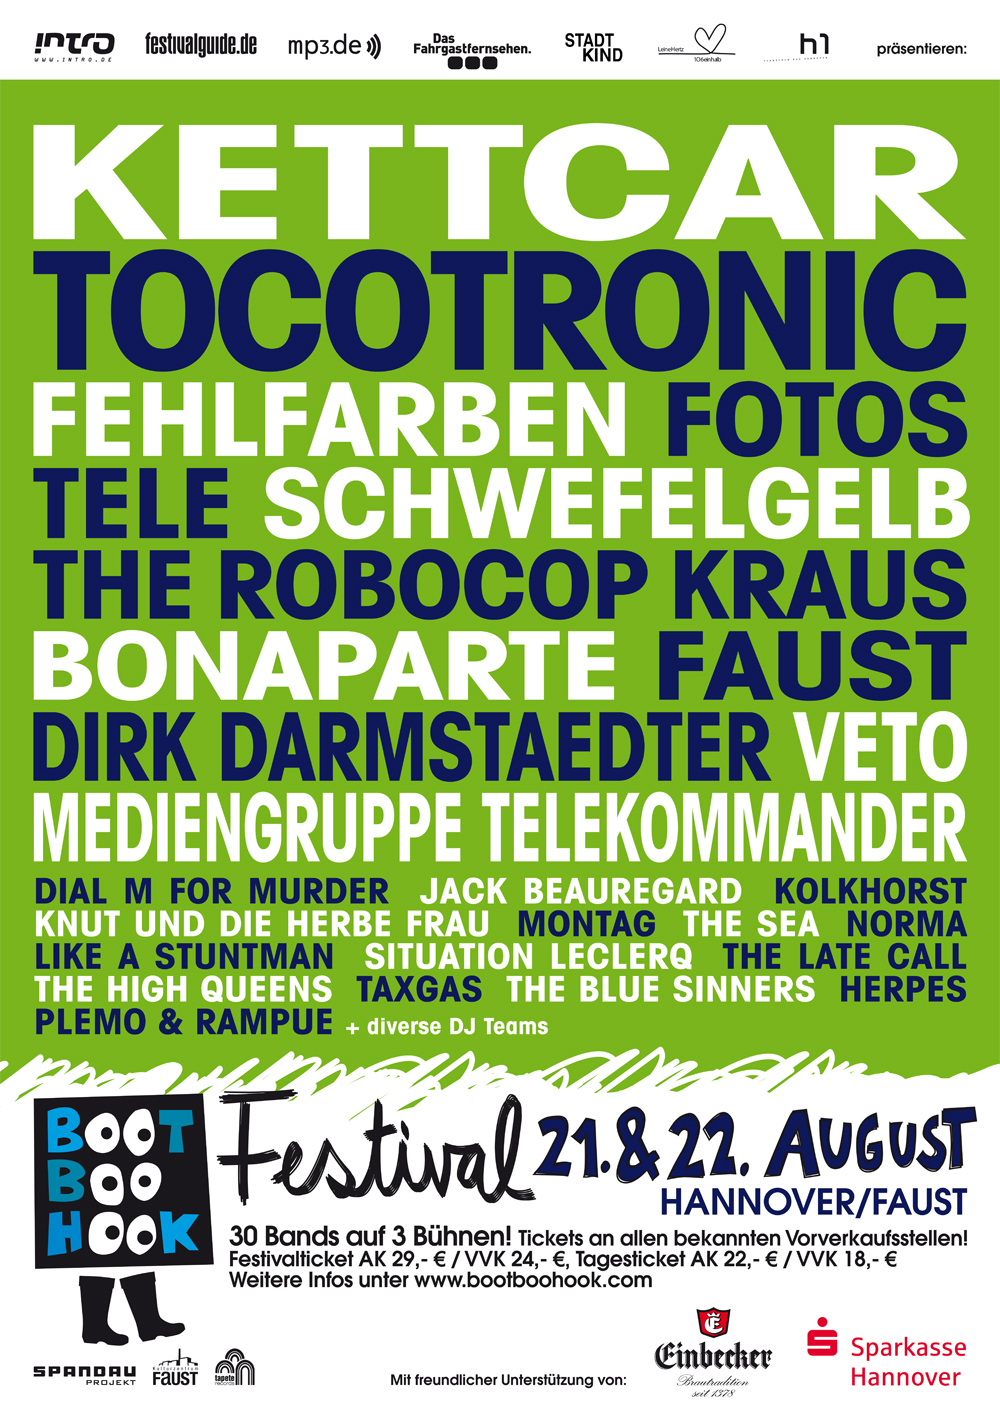 BootBooHook-Festival in Hannover, August 2009